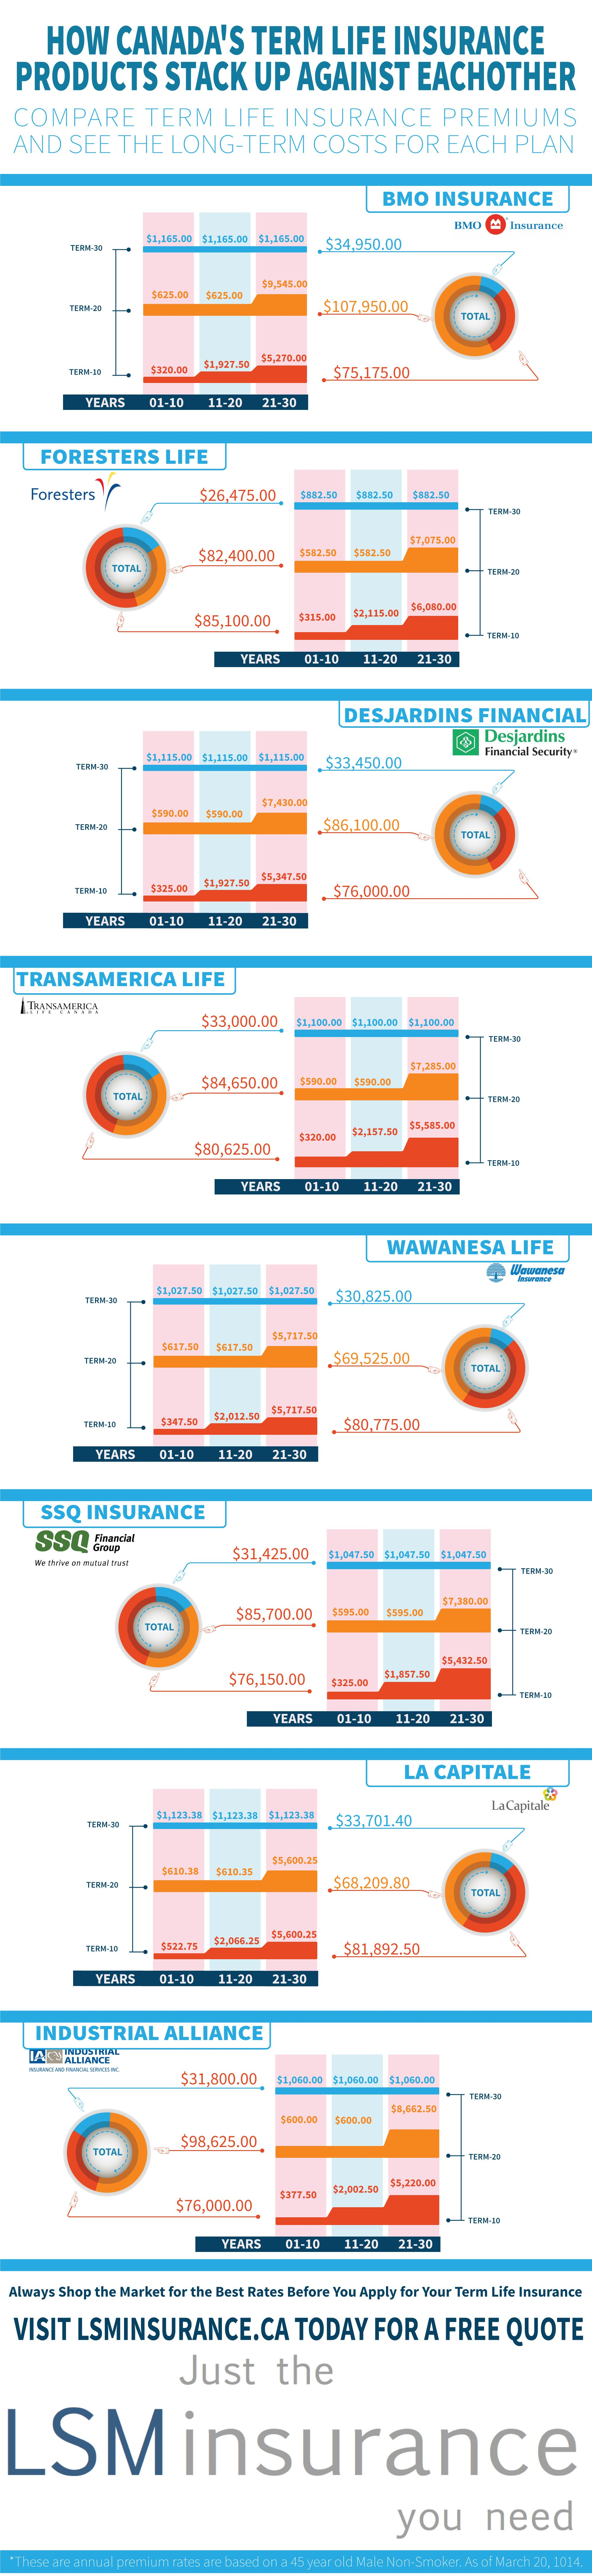 Are you thinking about buying Term life insurance? See